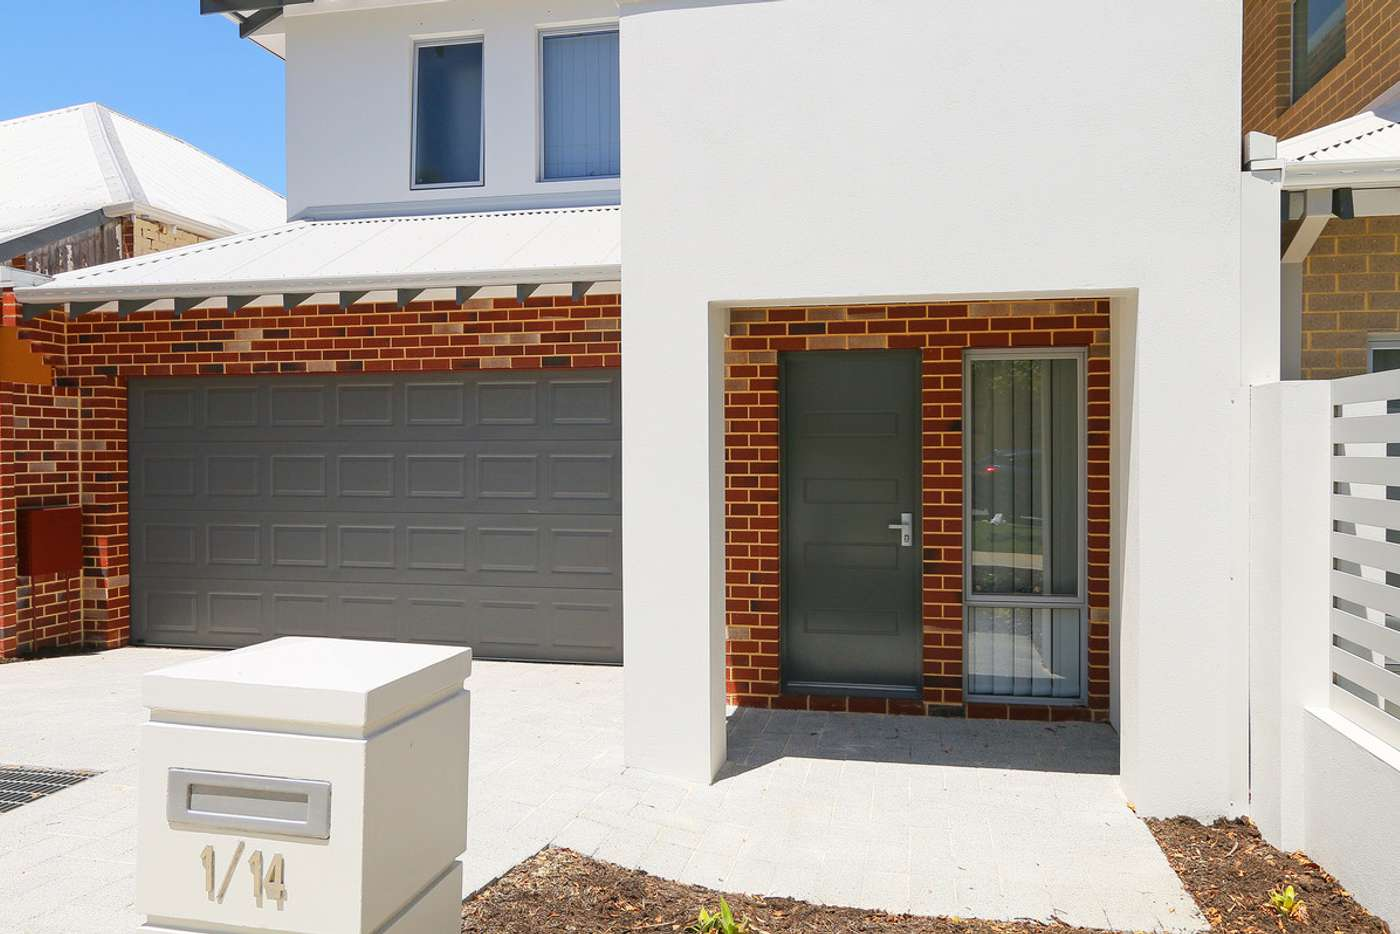 Main view of Homely townhouse listing, 1/14 Clydesdale Street, Burswood WA 6100